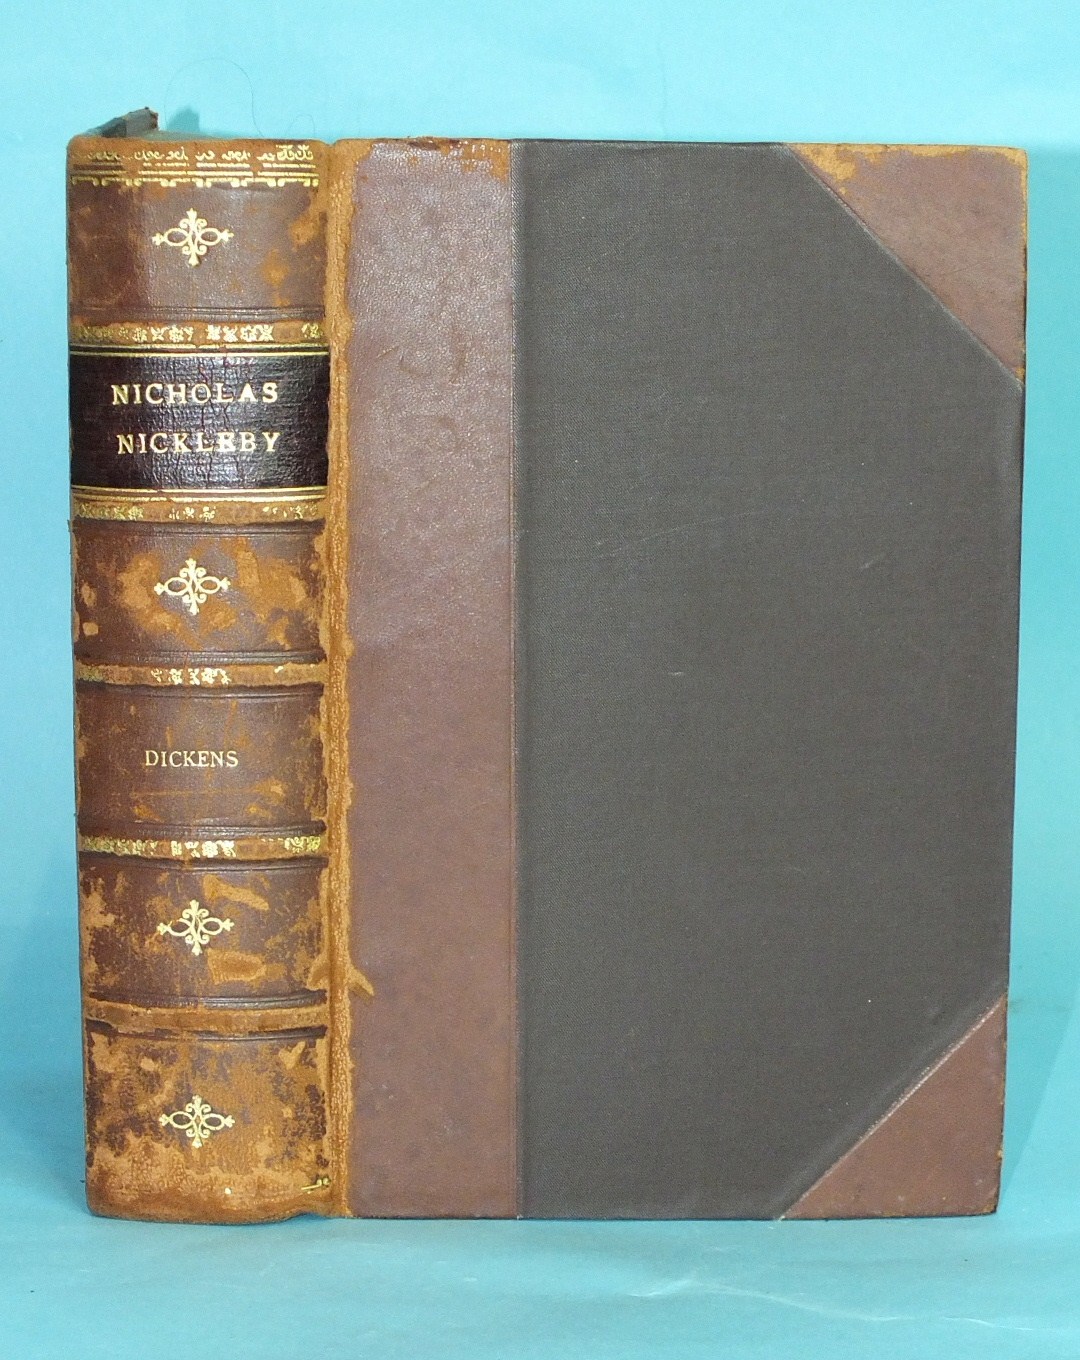 Dickens (Charles), The Life and Adventures of Nicholas Nickleby, first edition, early state, plts by